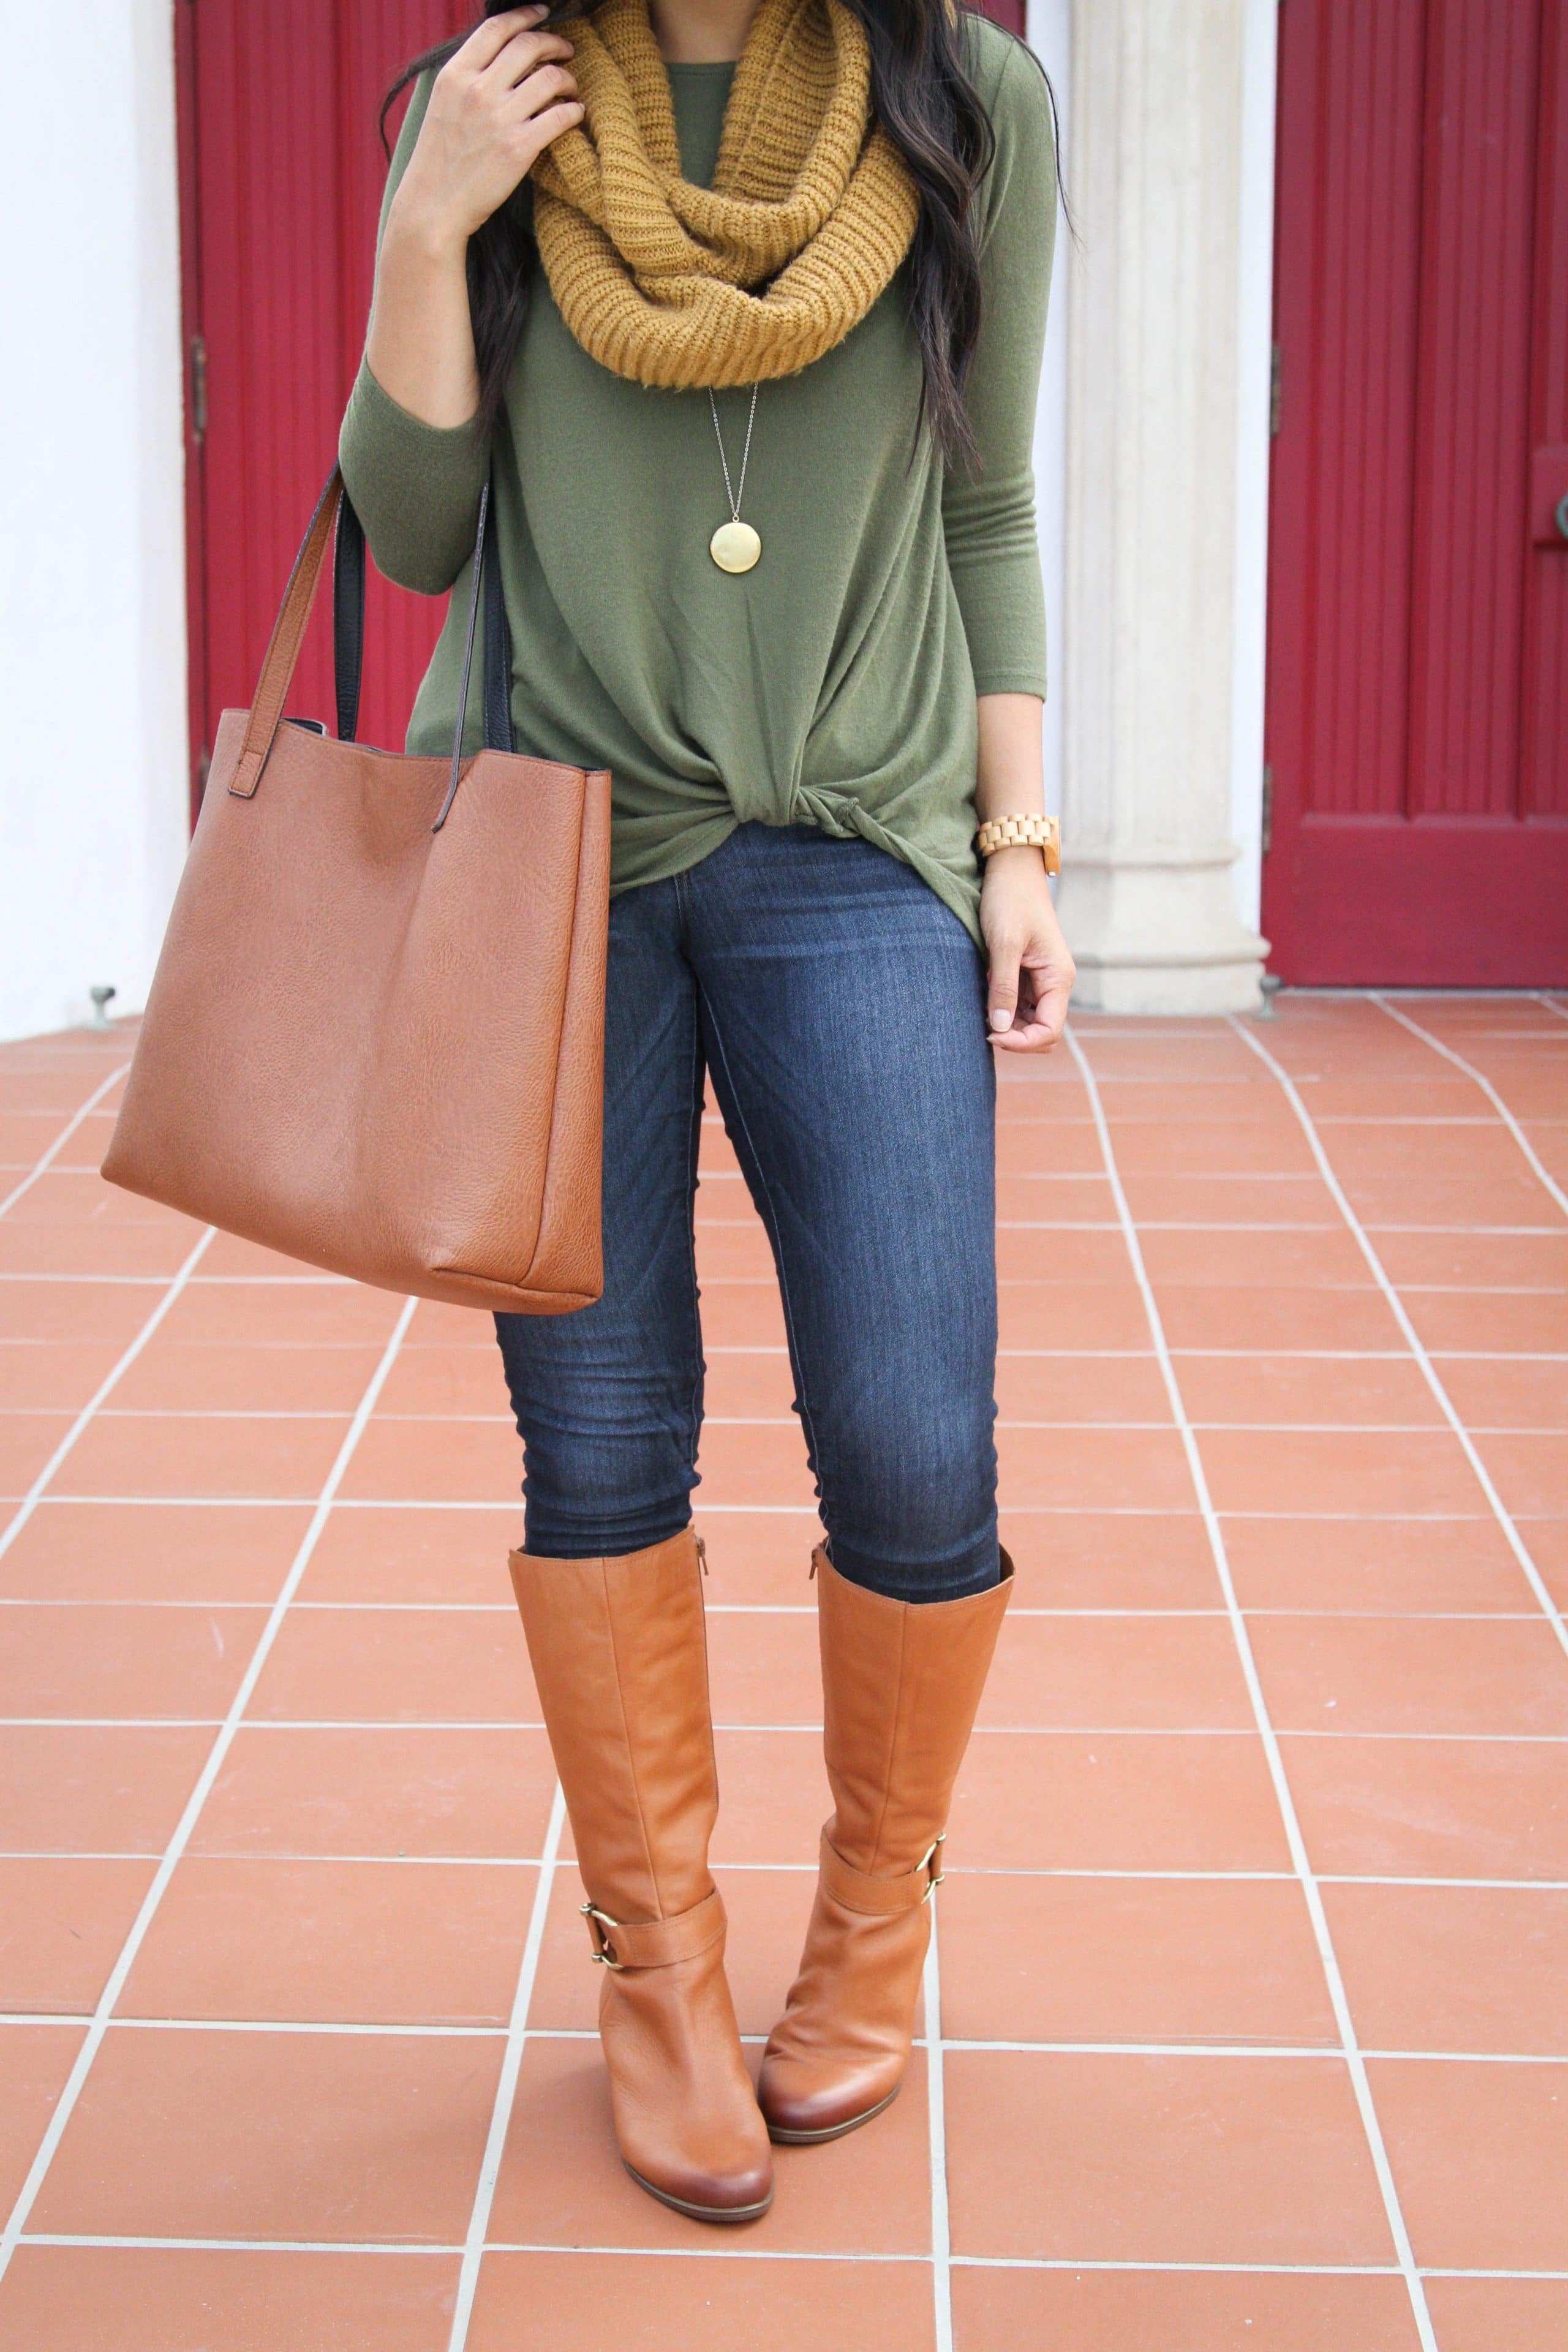 Riding Boots + Skinnies + Tote + Green Sweater + Mustard Scarf